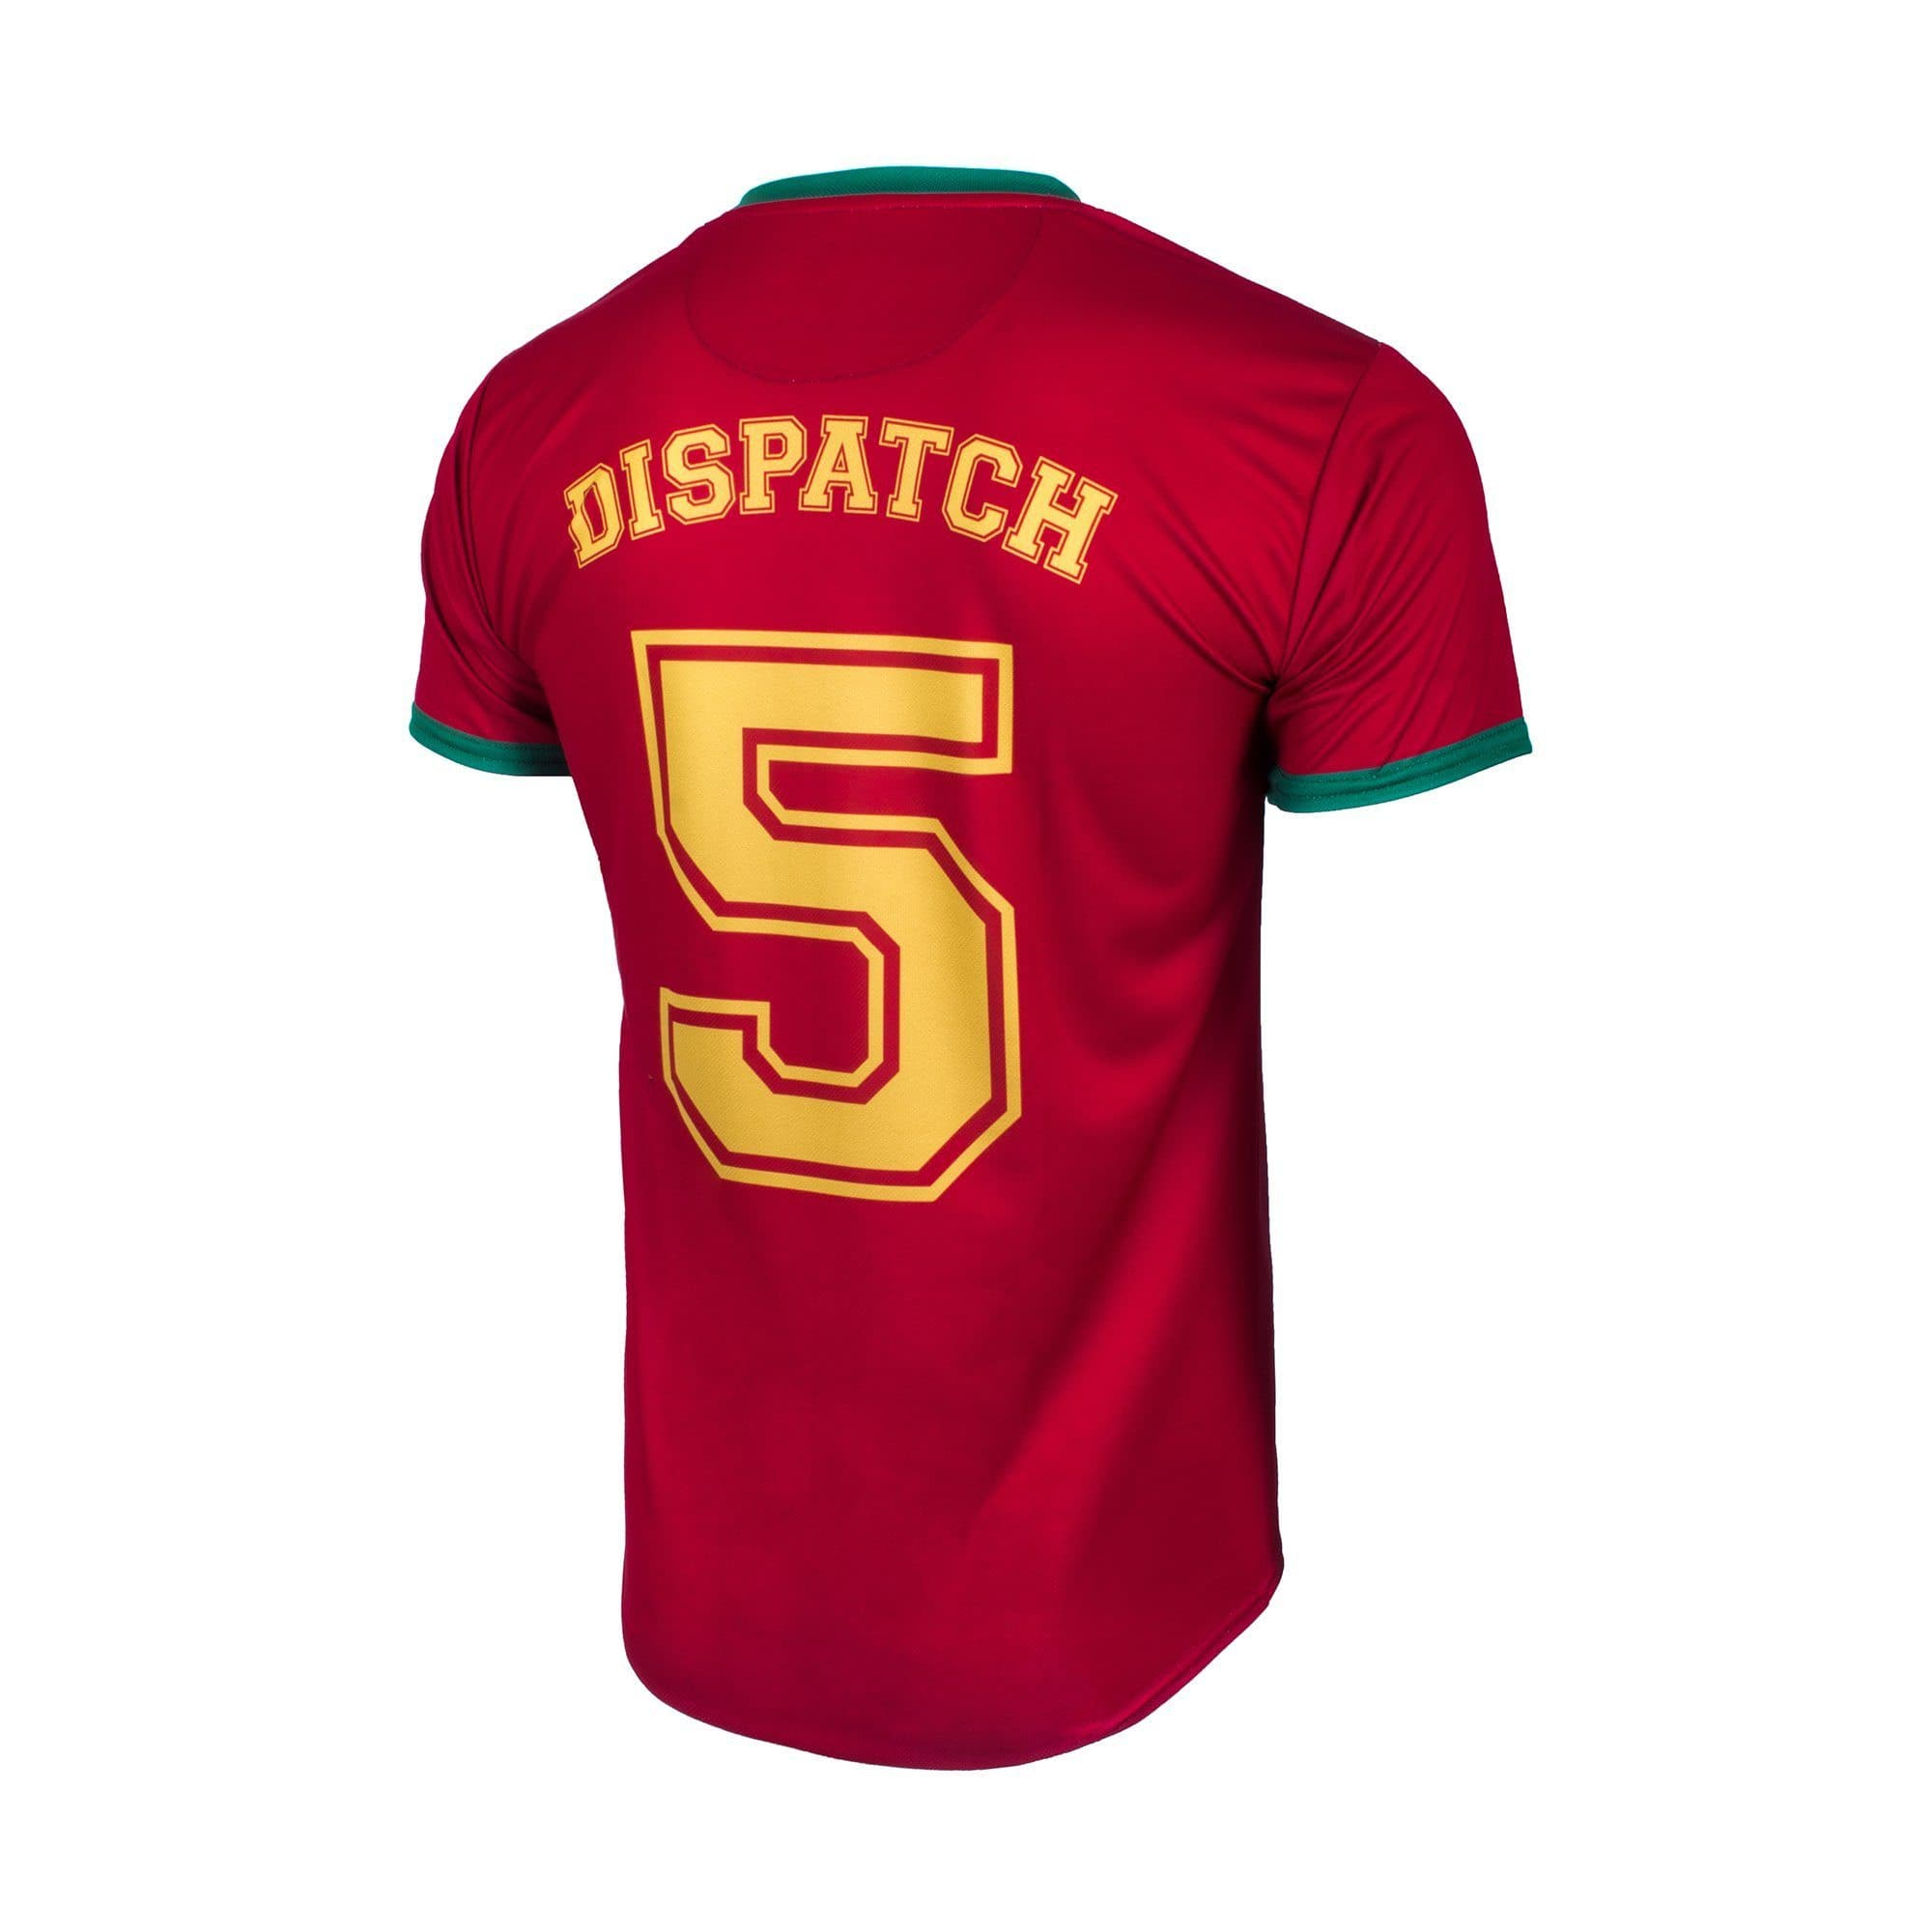 Dispatch 'Portugal' Soccer Jersey